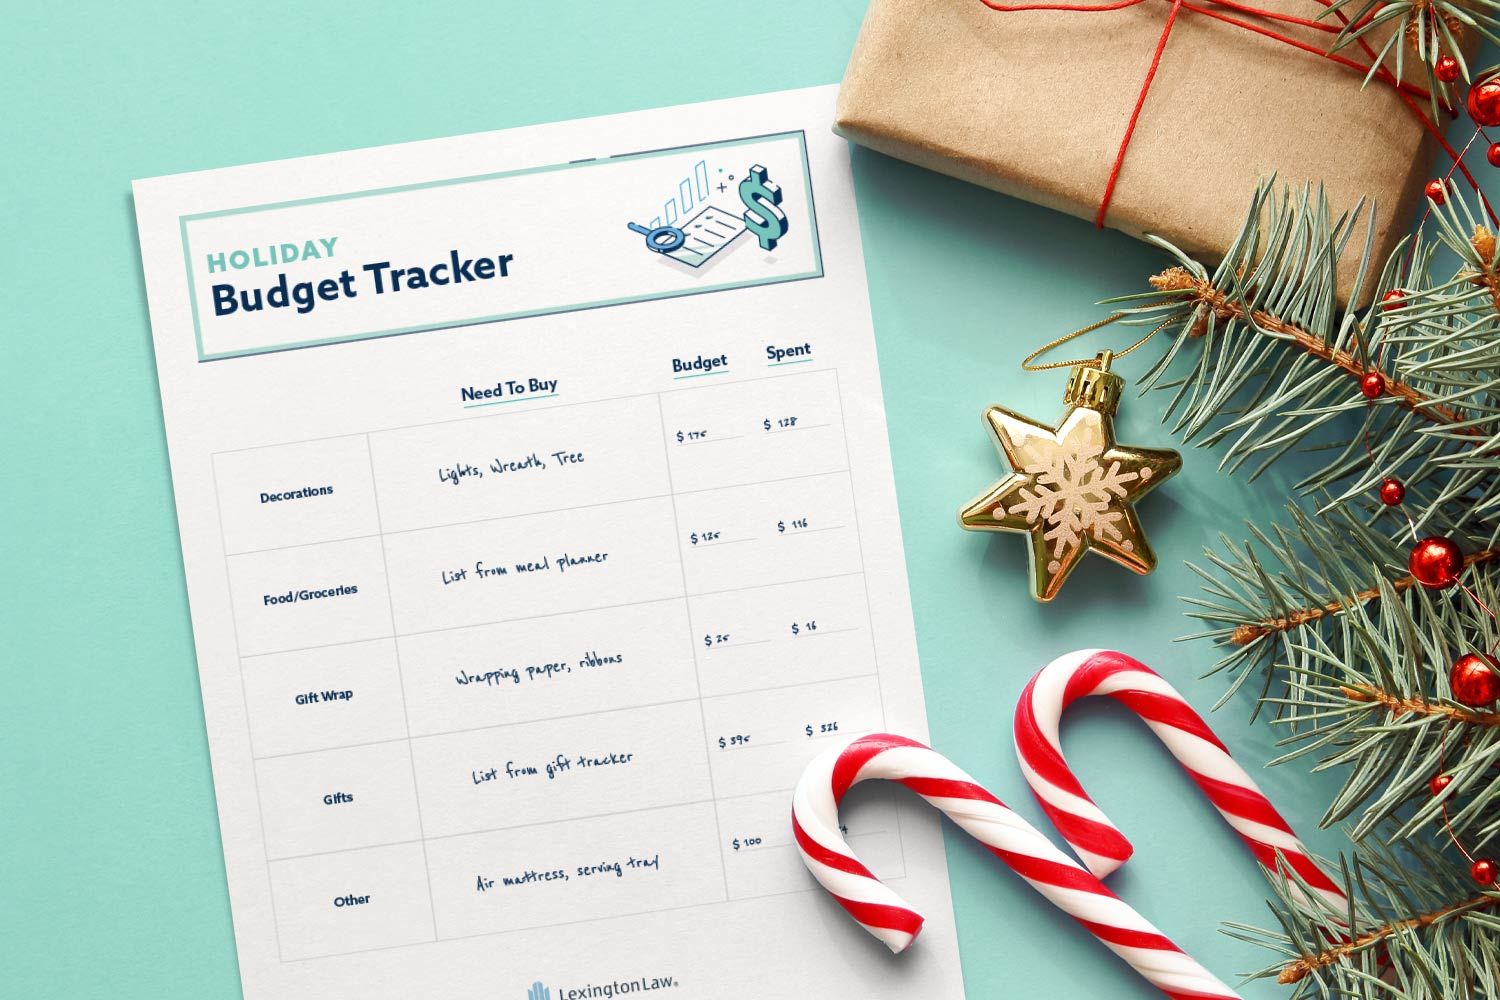 Holiday budget tracker printable